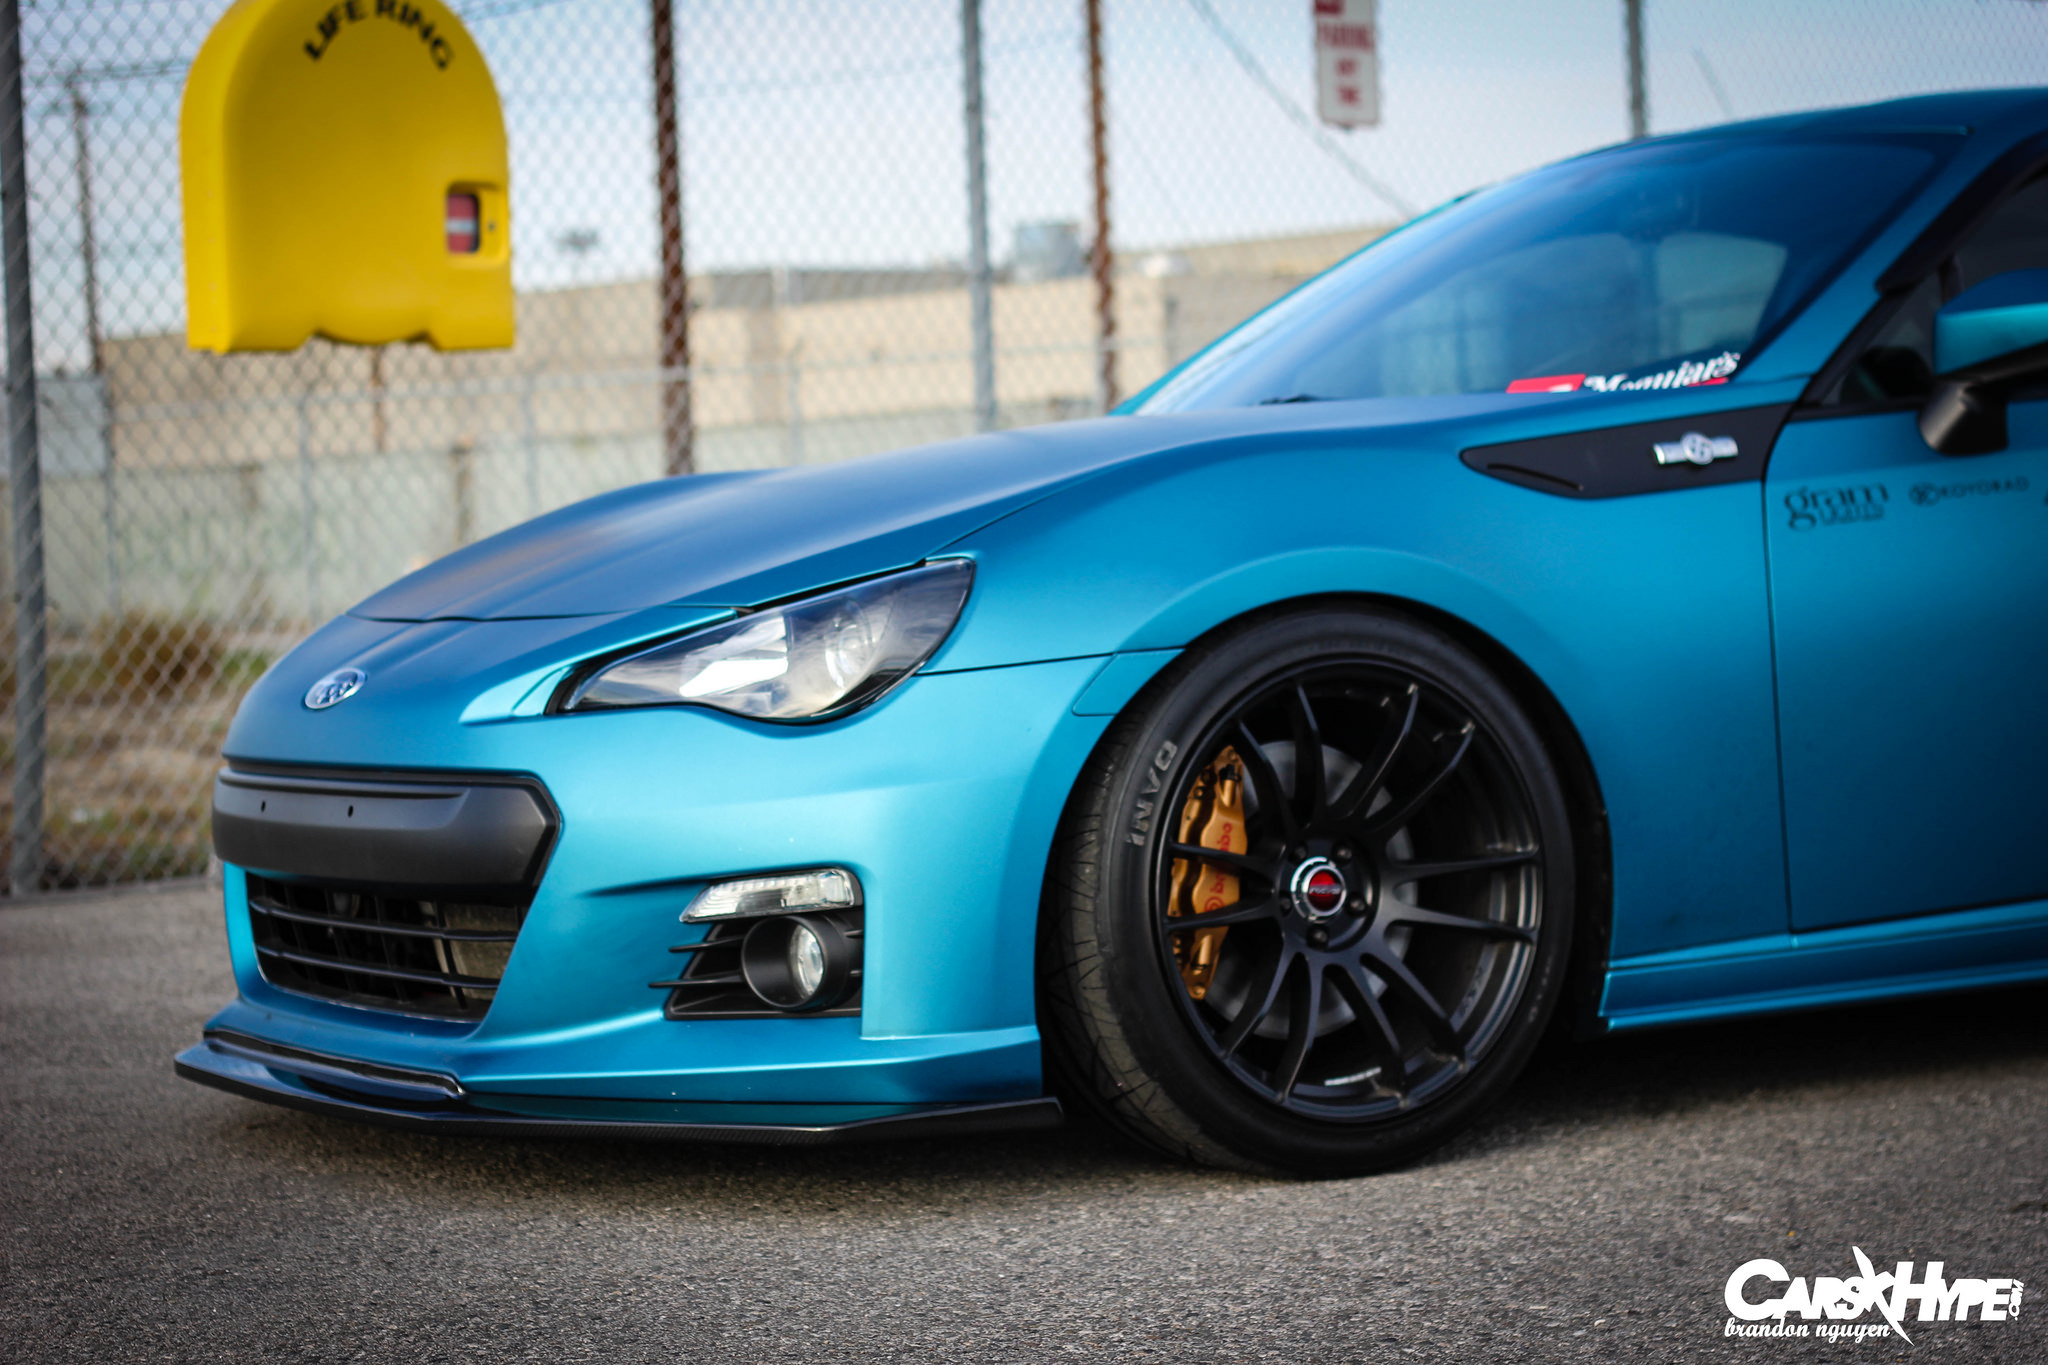 M_tea's Scion FRS - MPPSOCIETY